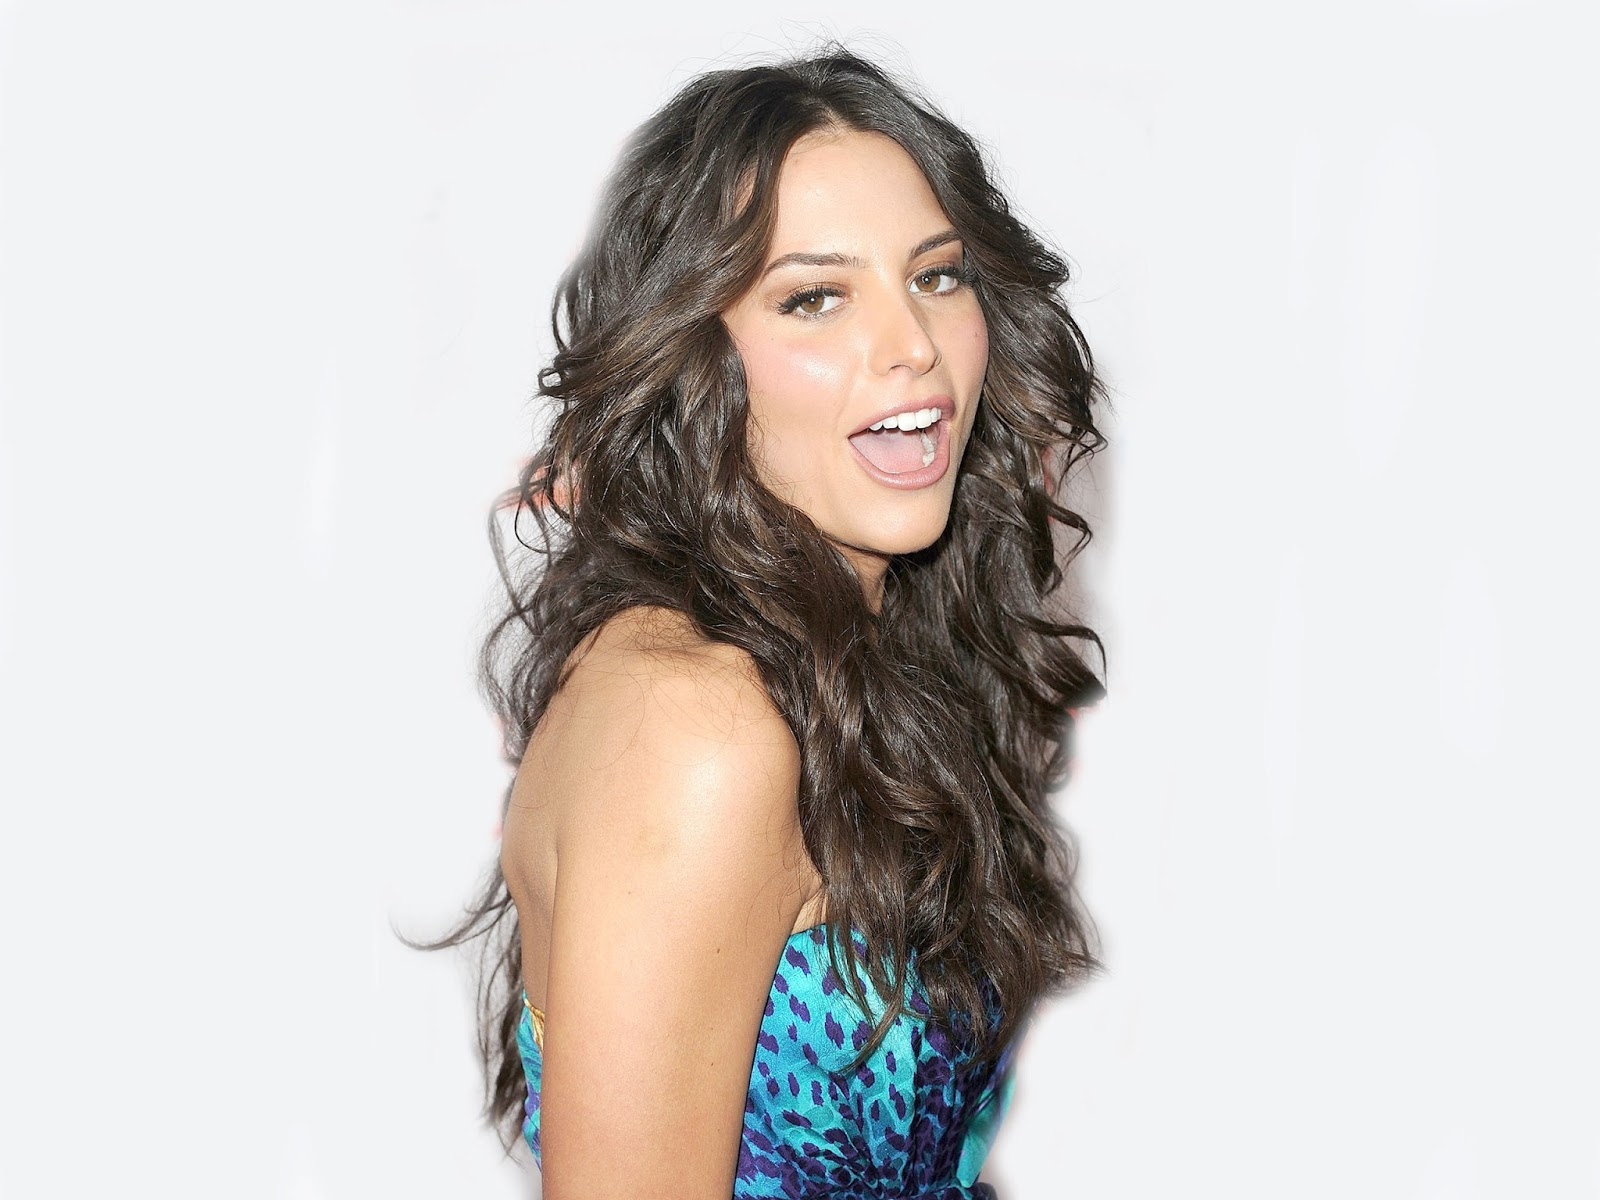 Genesis Rodriguez Fresh Hd Wallpapers 2013 Hollywood